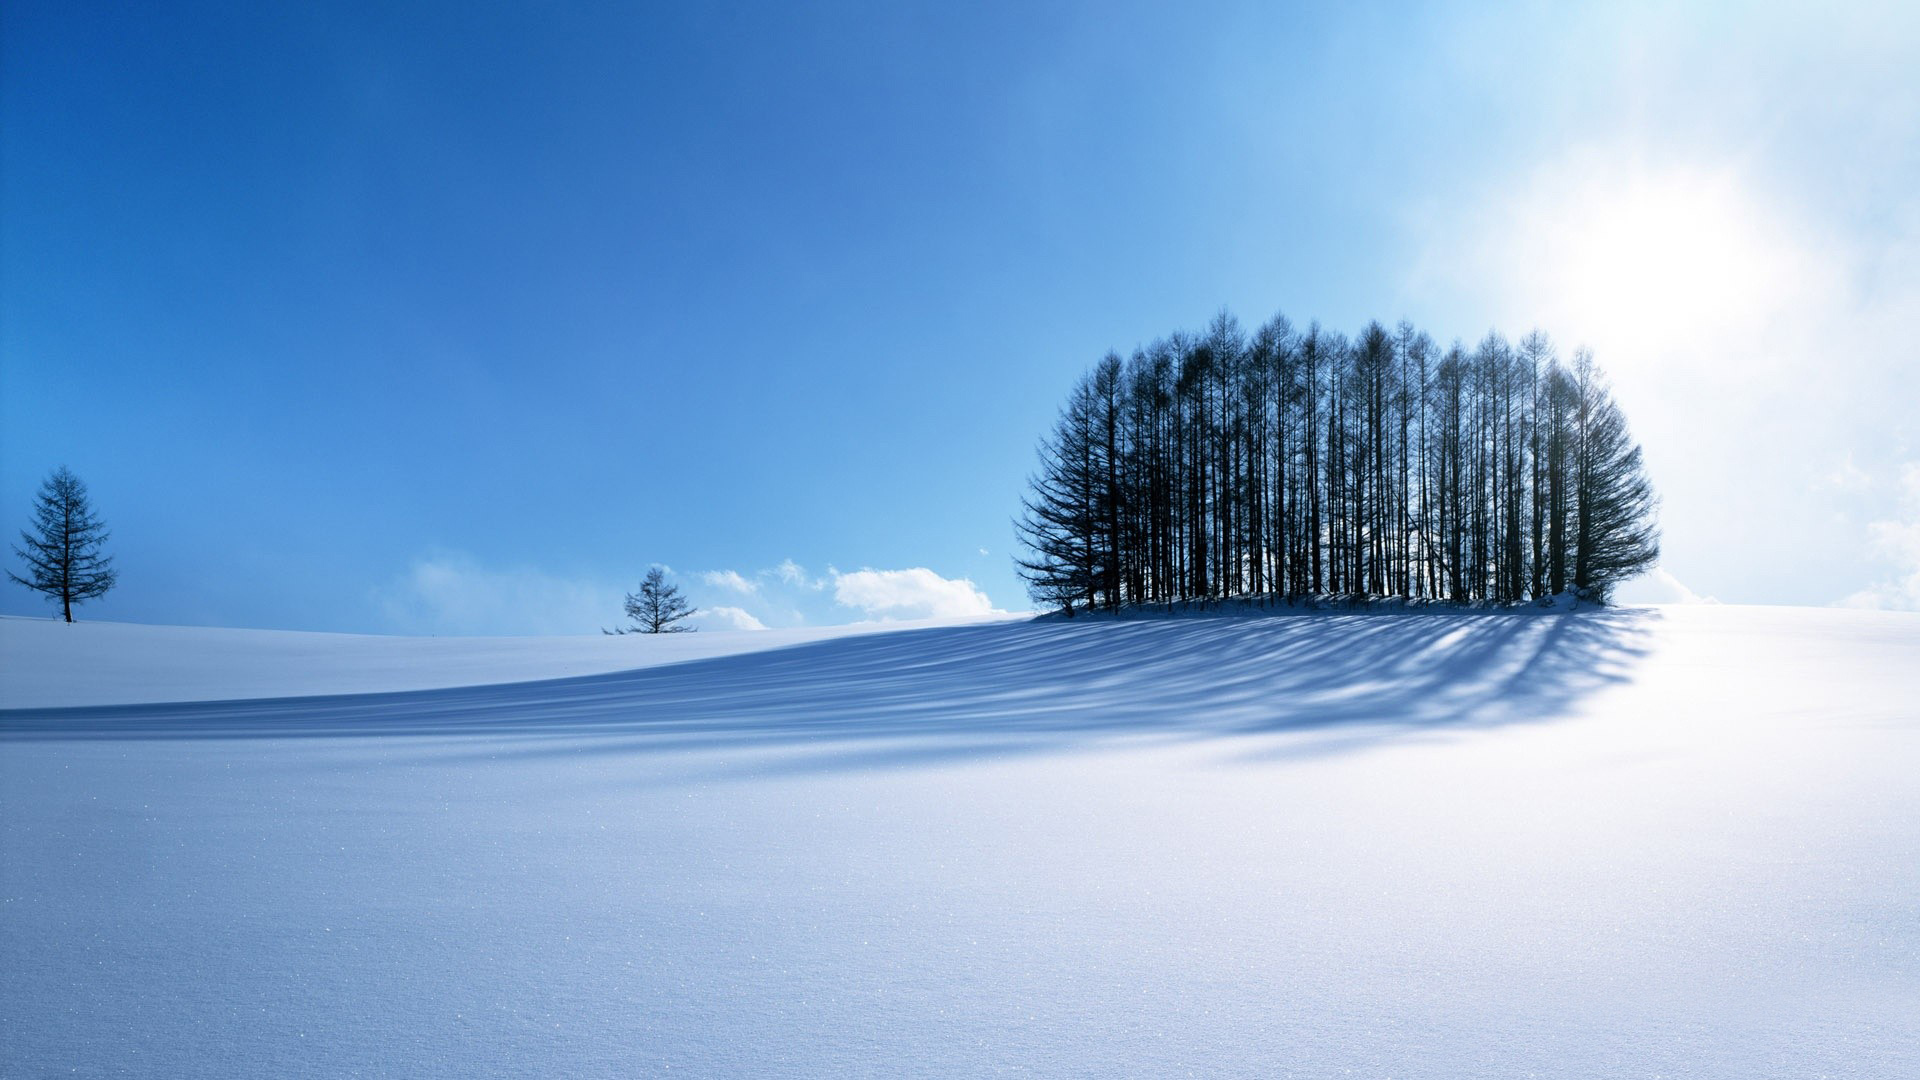 Scenery Wallpaper   With a Winter and Snowy Scene an Amazing One 1920x1080